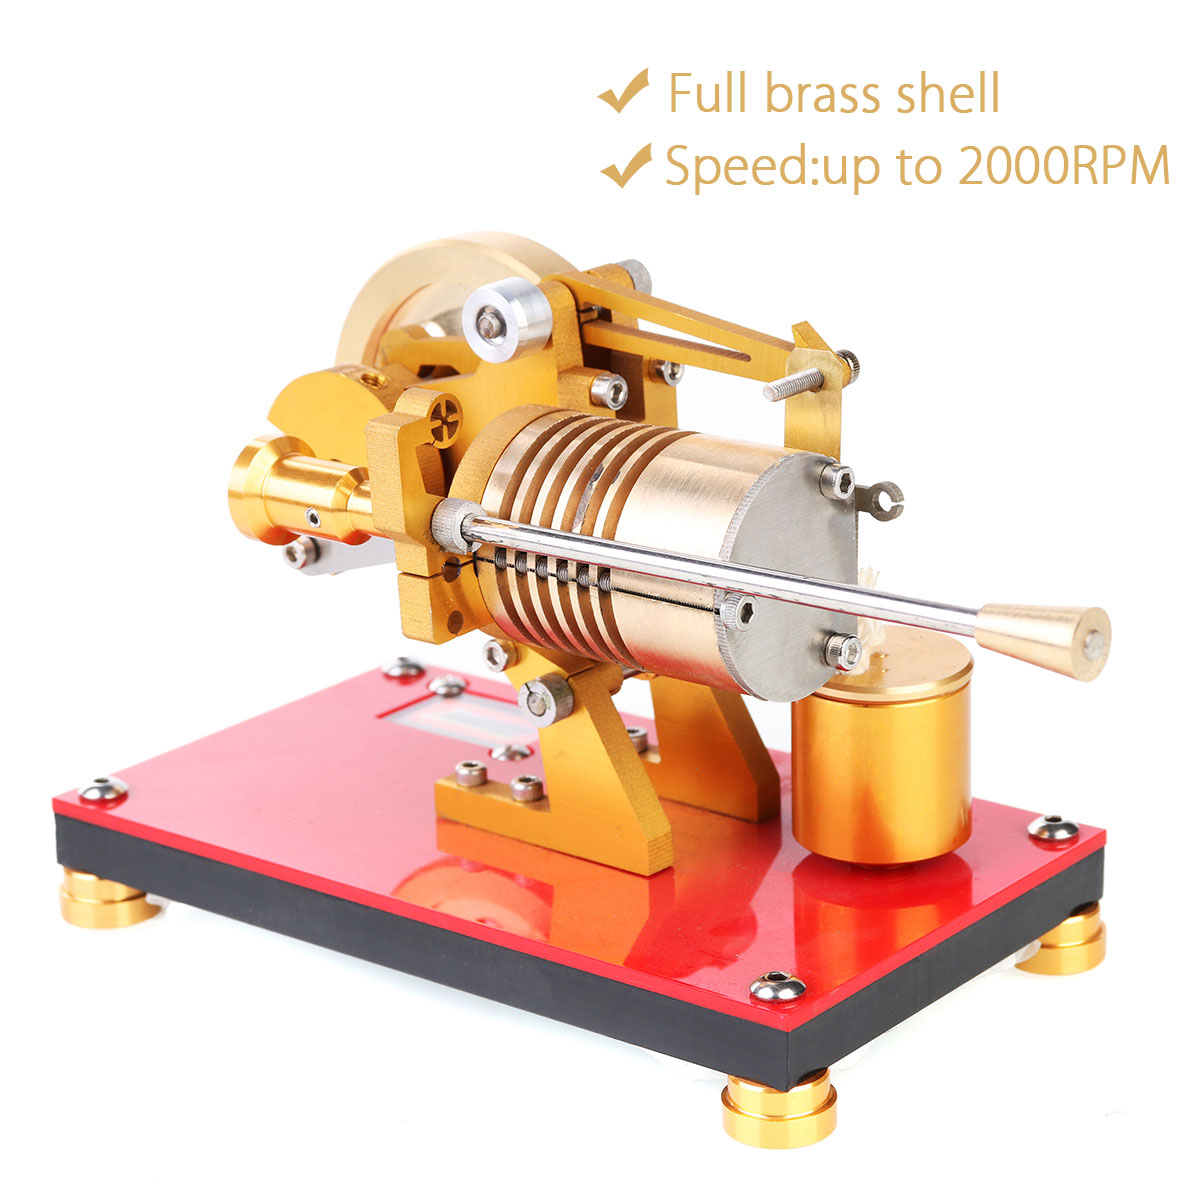 LBLA New Stirling Engine Model Full Metal Power Motor Toy Steam Miniature for Toys Kids EducationalLBLA New Stirling Engine Model Full Metal Power Motor Toy Steam Miniature for Toys Kids Educational